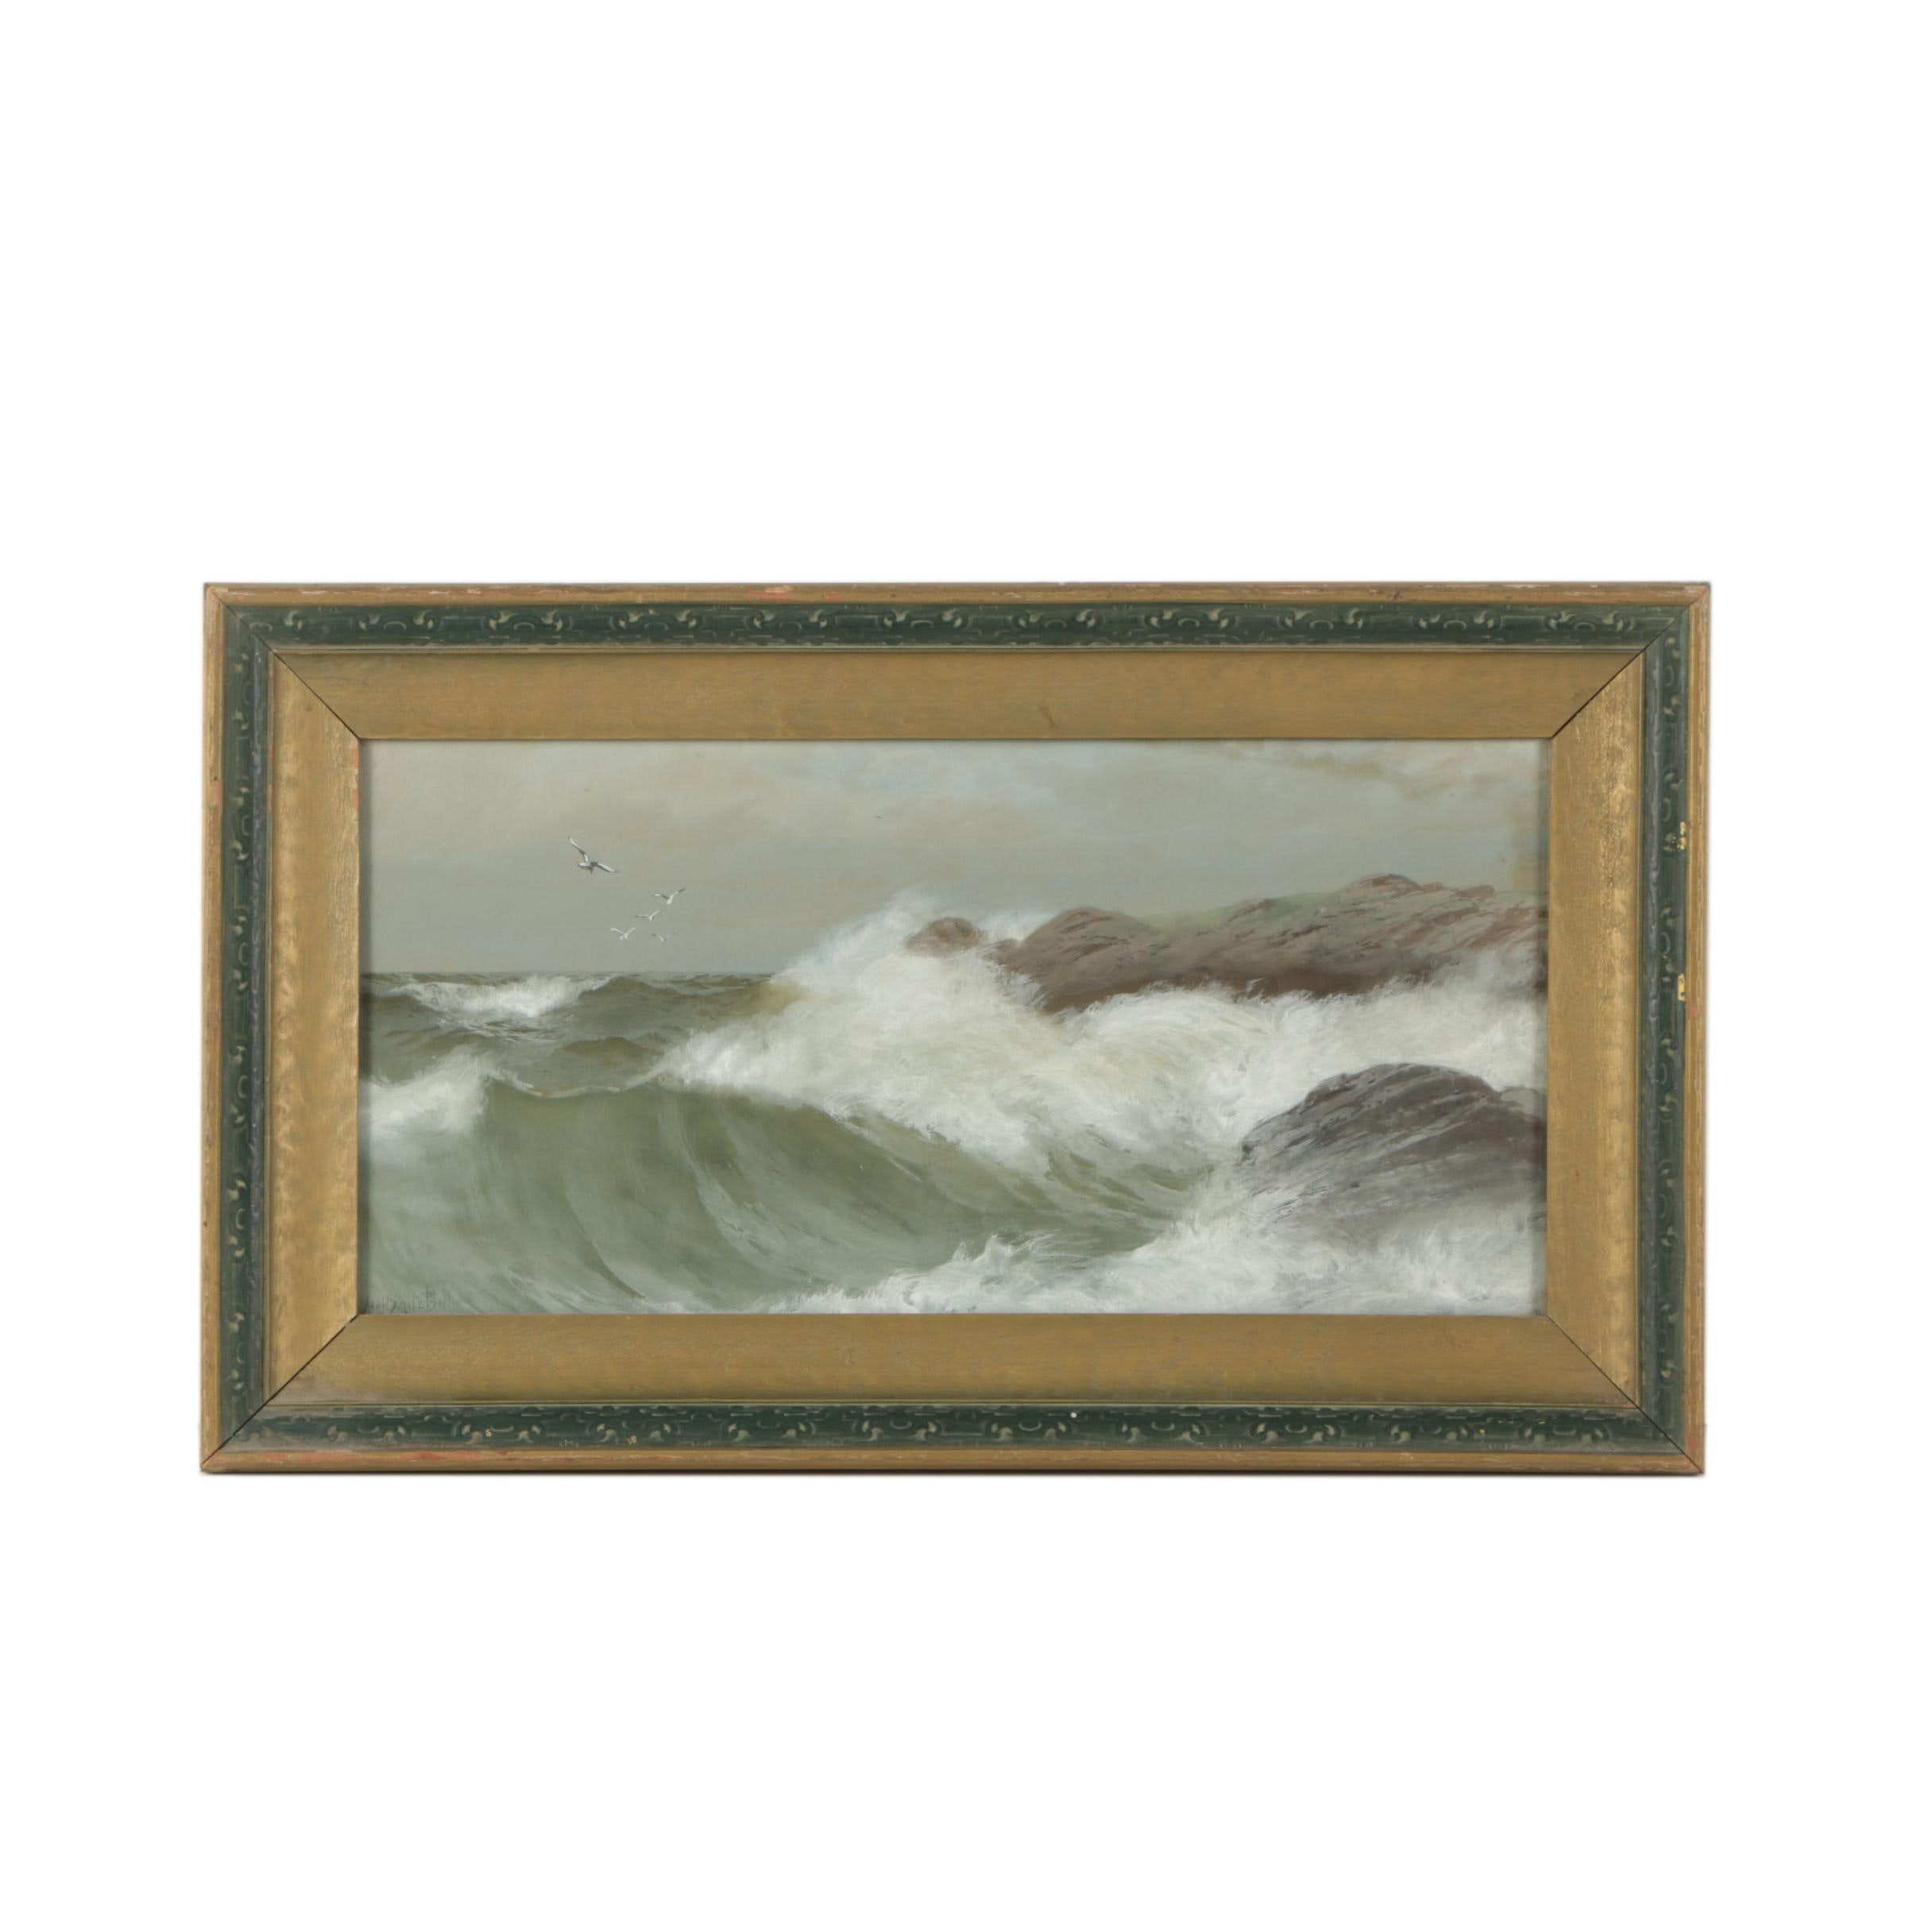 Neil Mitchill Gouache Painting of a Turbulent Seascape